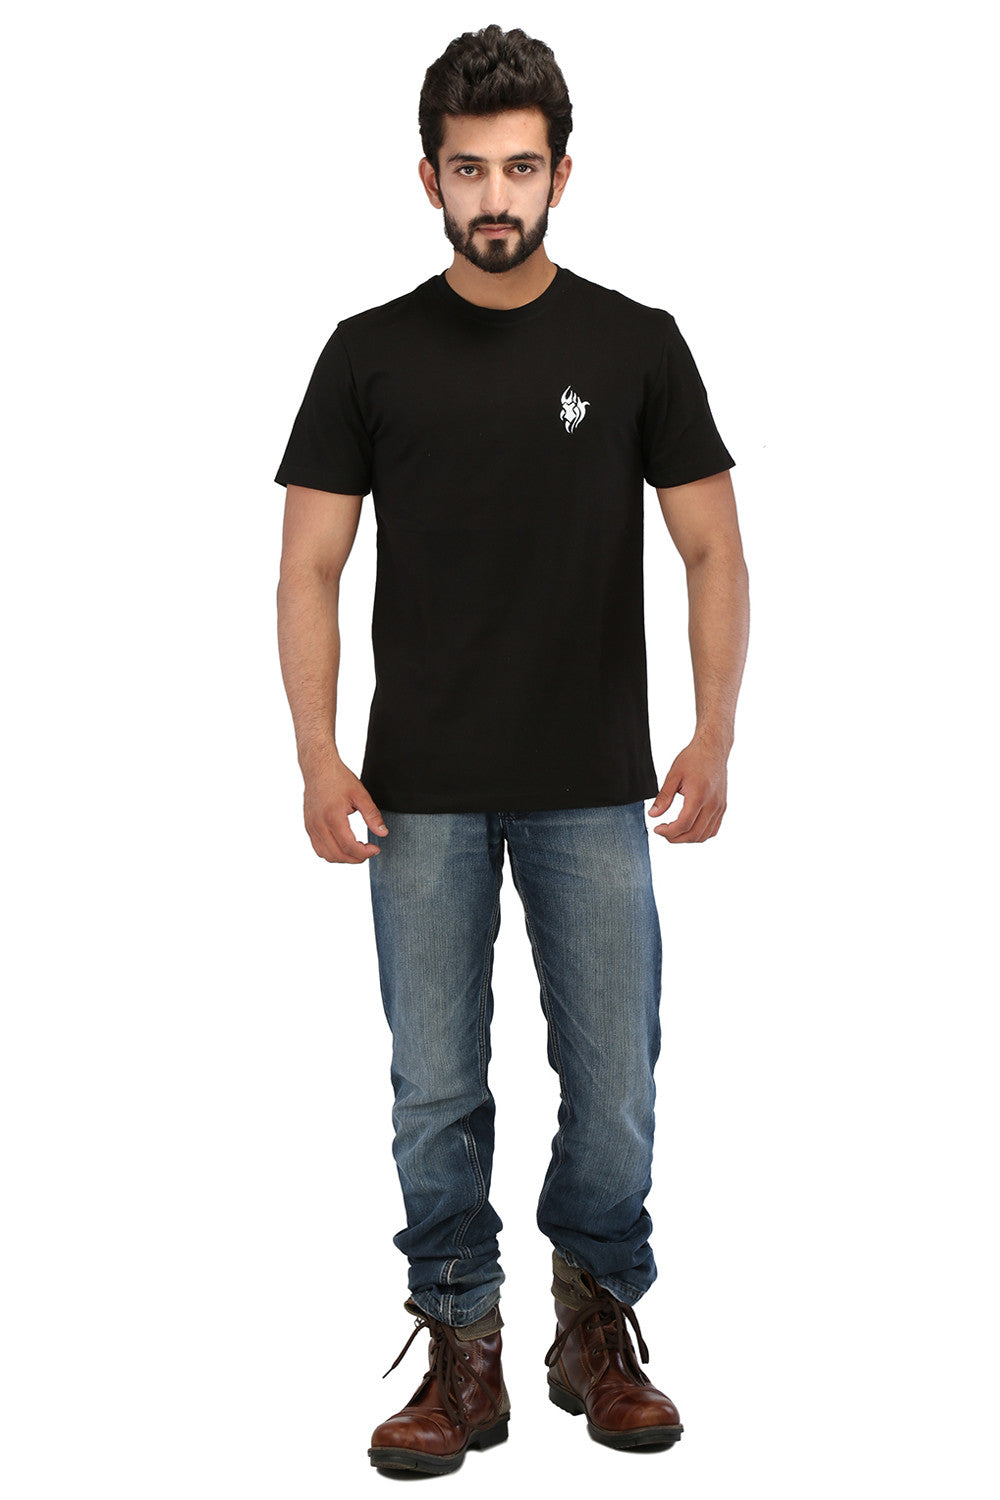 Hand-painted Tribal Tales Black T-shirt - Rang Rage  - 4